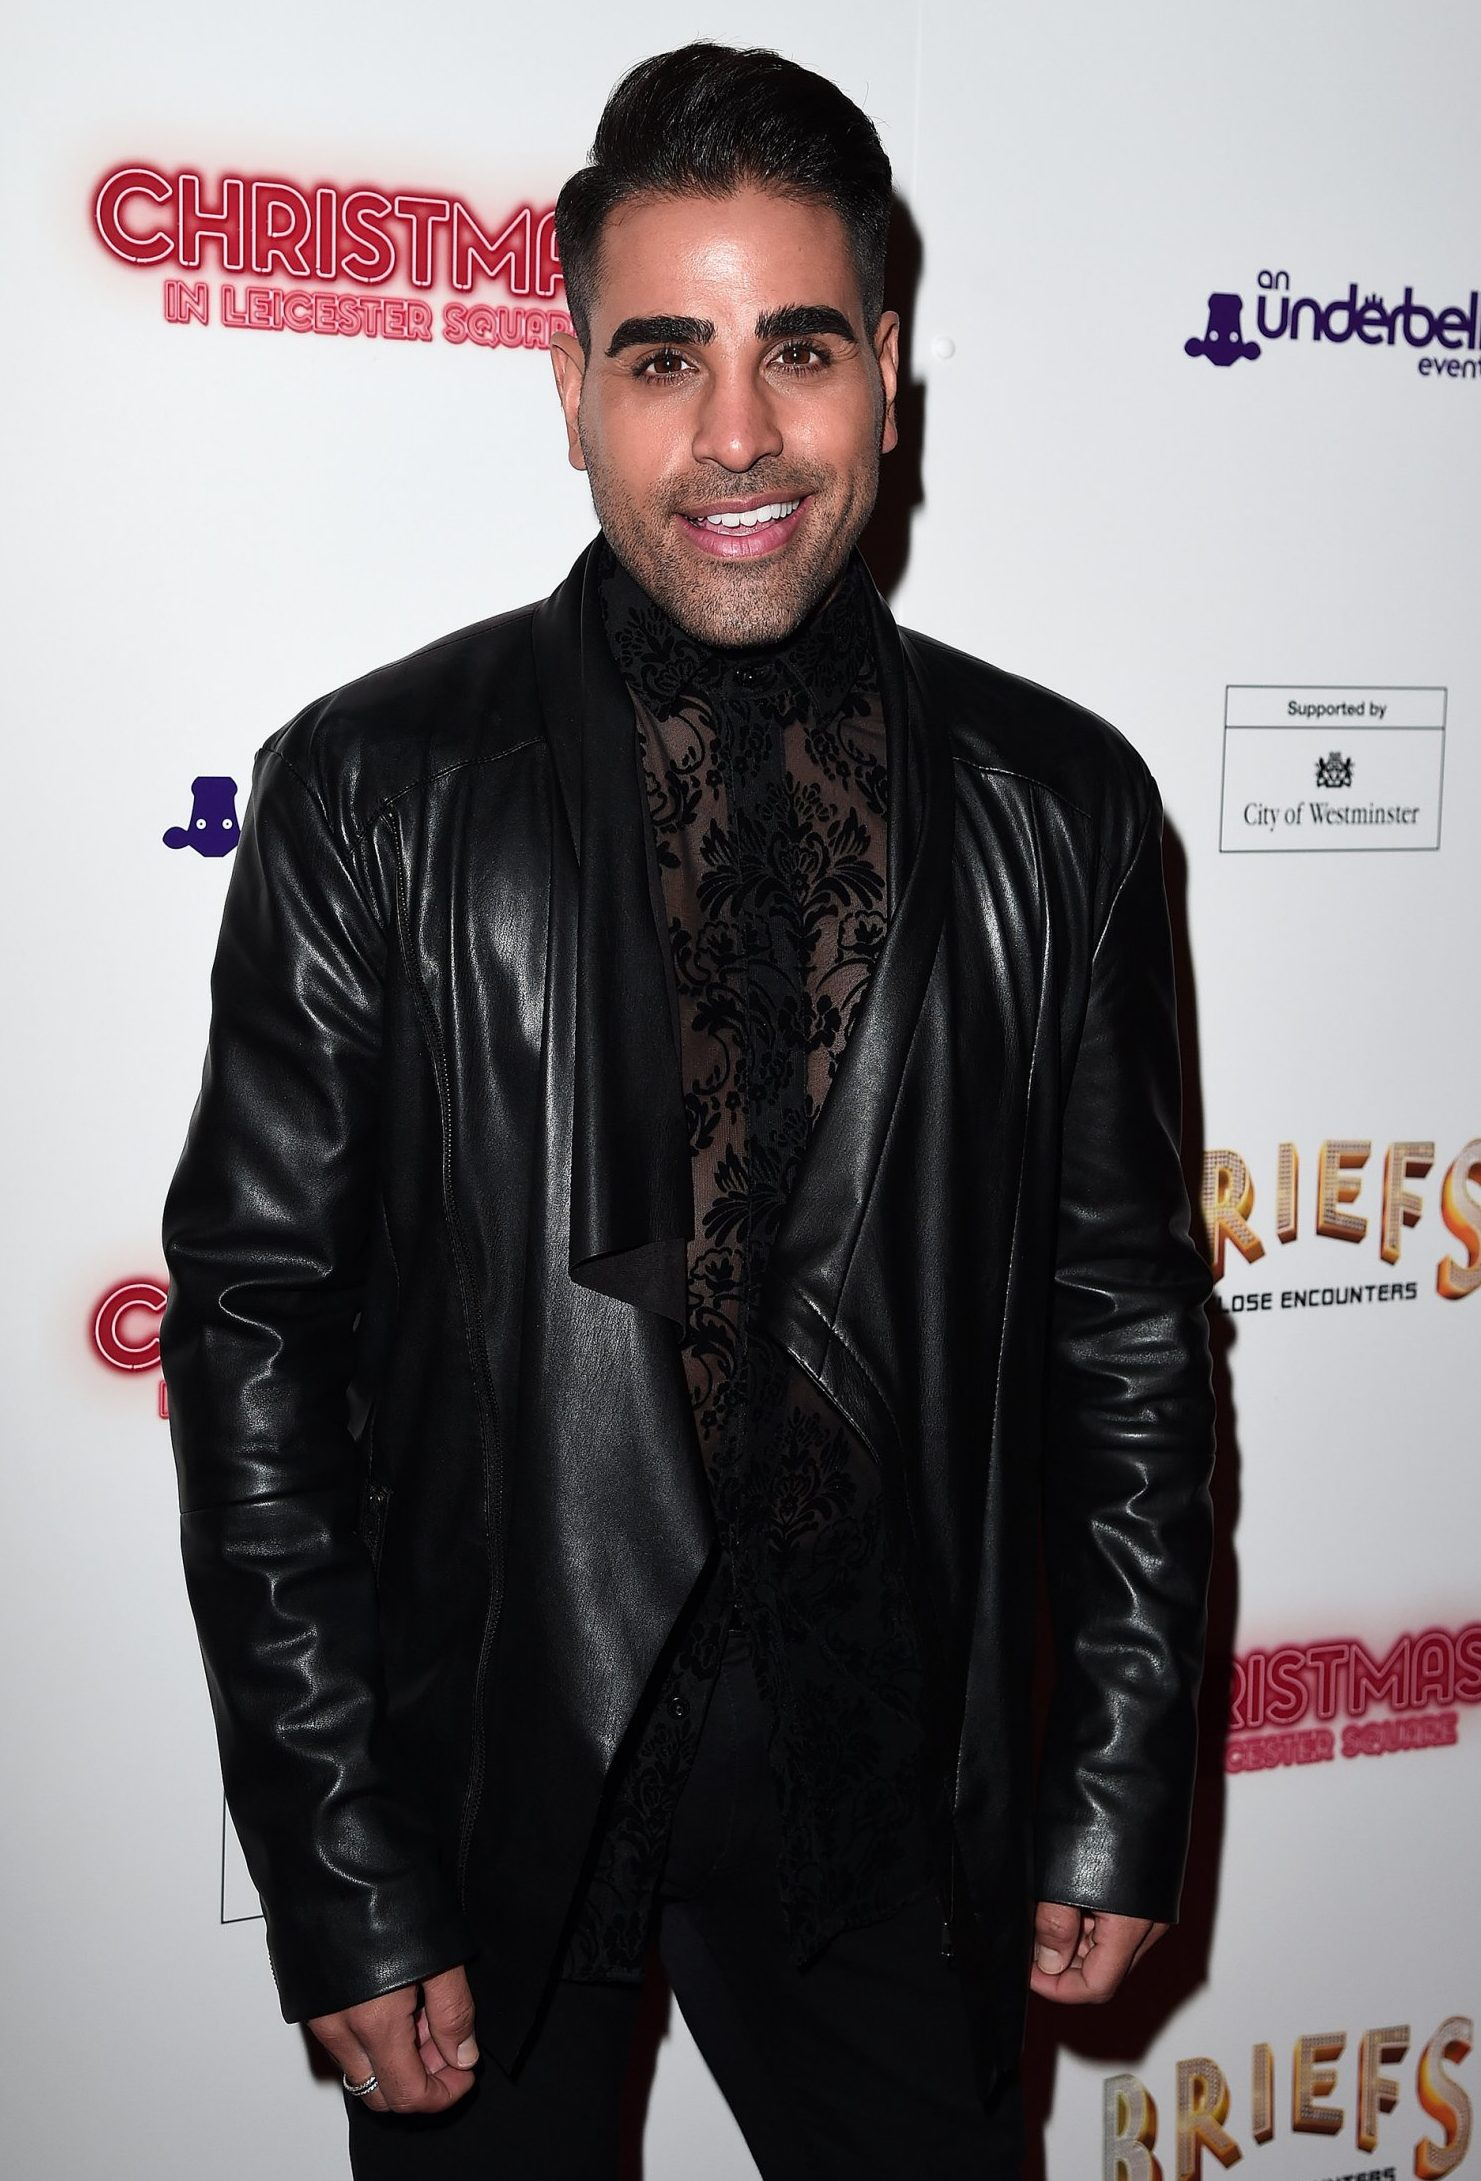 LONDON, ENGLAND - NOVEMBER 14: Doctor Raj Singh attends the opening night of 'BRIEFS: Close Encounters' at the Spiegeltent Leicester Square on November 14, 2018 in London, England. (Photo by Eamonn M. McCormack/Getty Images)